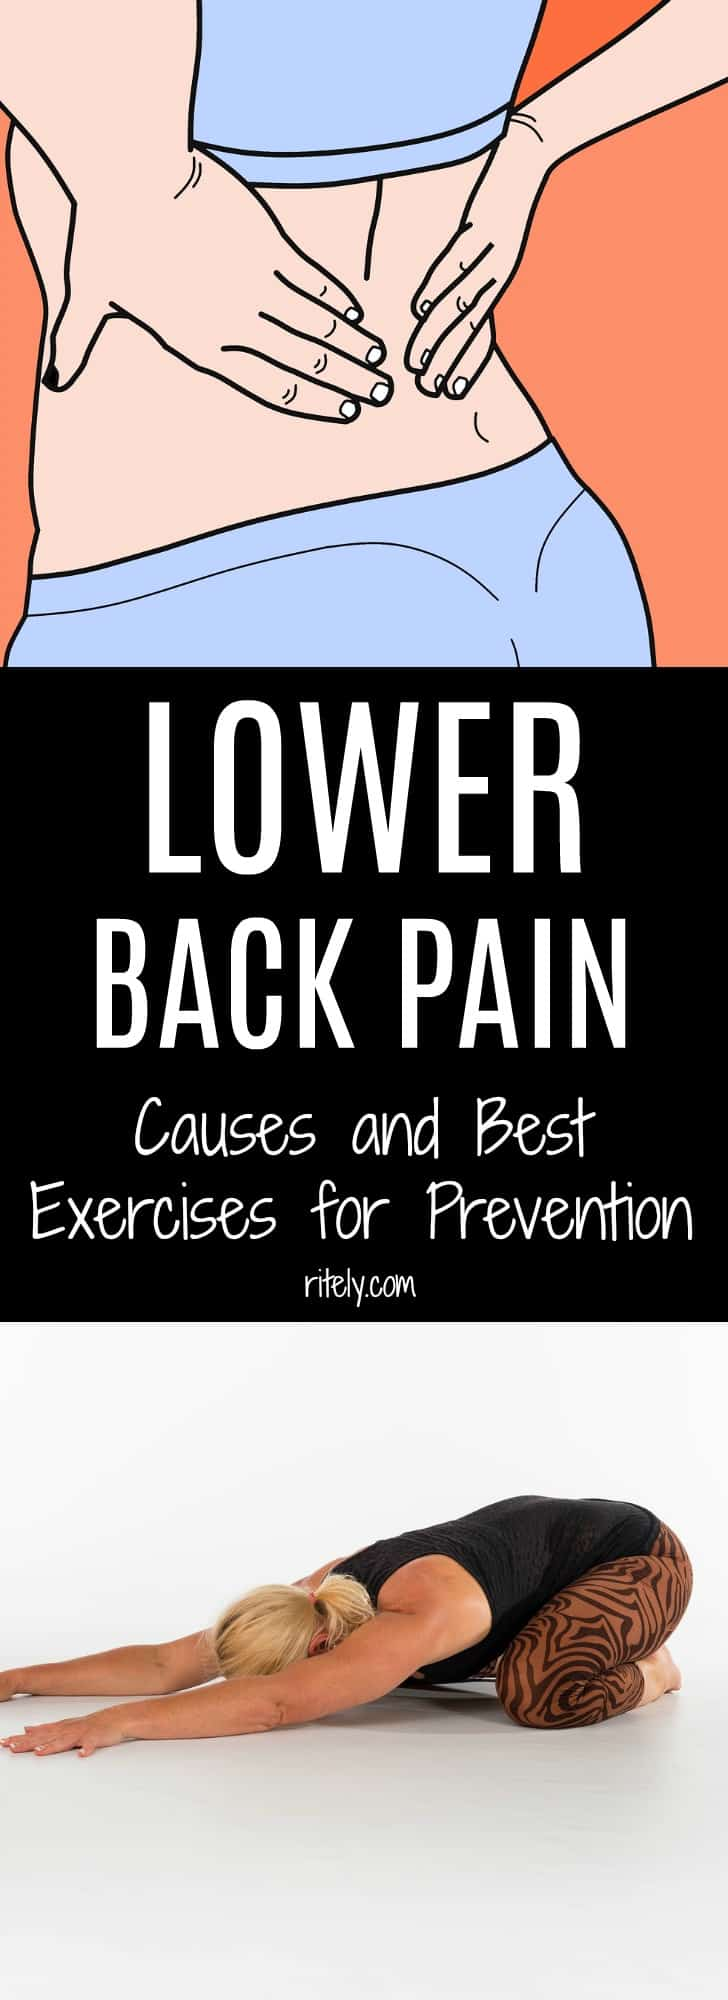 Lower Back Pain: Causes and Best Exercises for Prevention